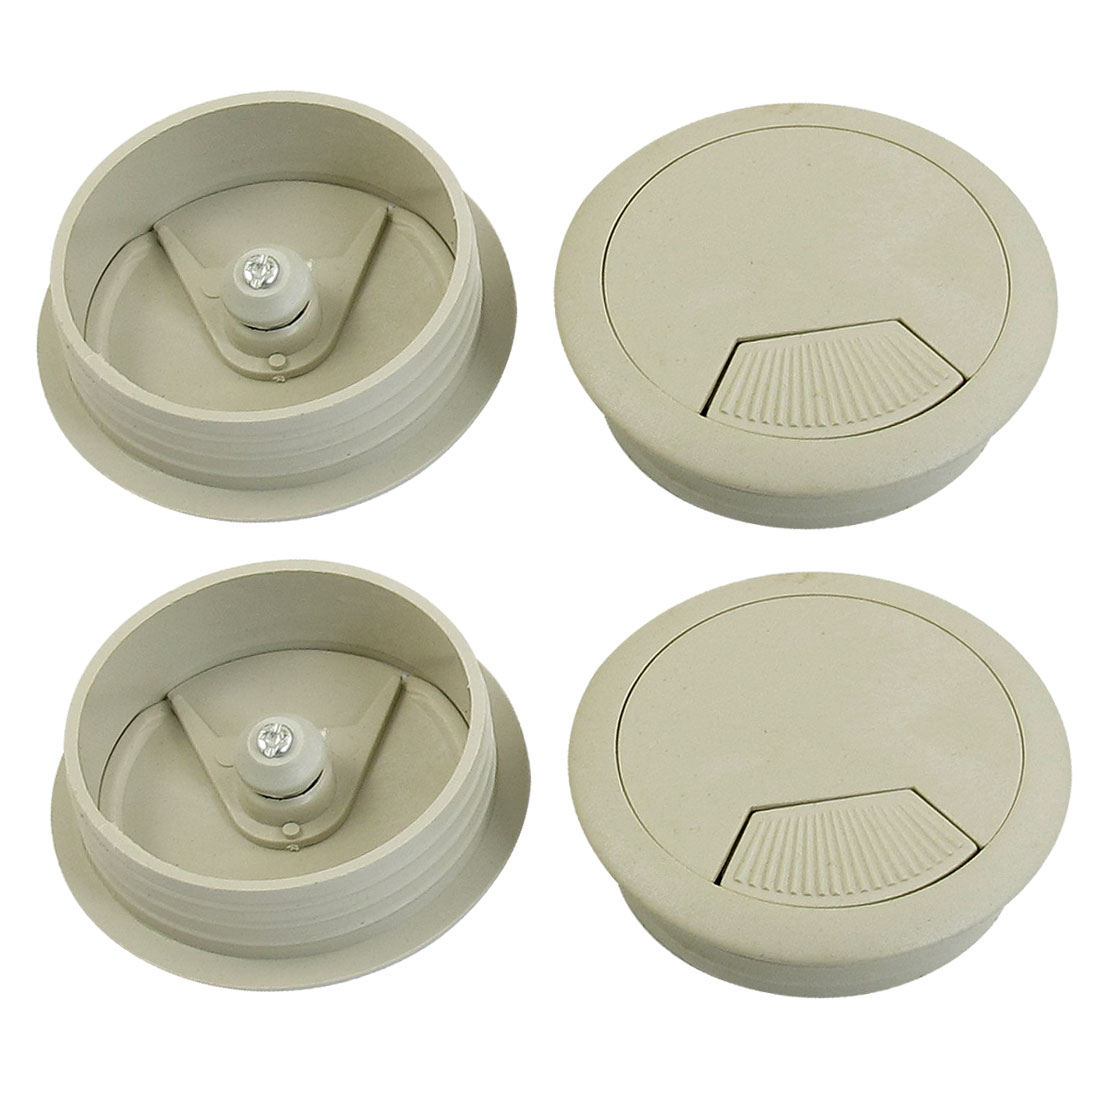 Plastic Gray Grommet Cable Hole Cover 50mm Dia 4pcs for Computer Table